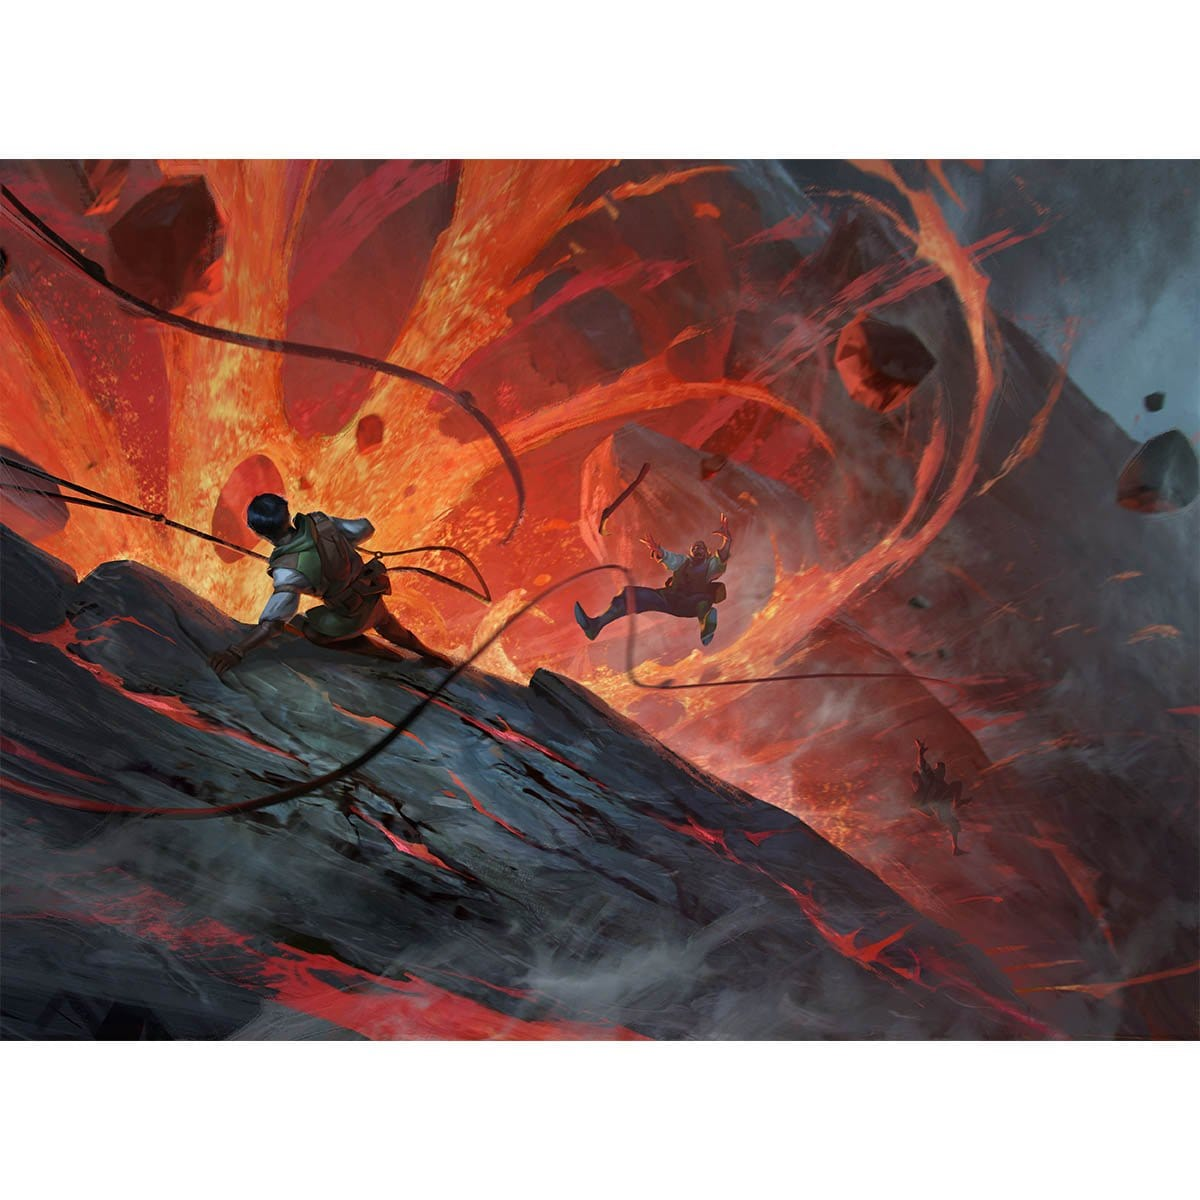 Violent Eruption Print - Print - Original Magic Art - Accessories for Magic the Gathering and other card games